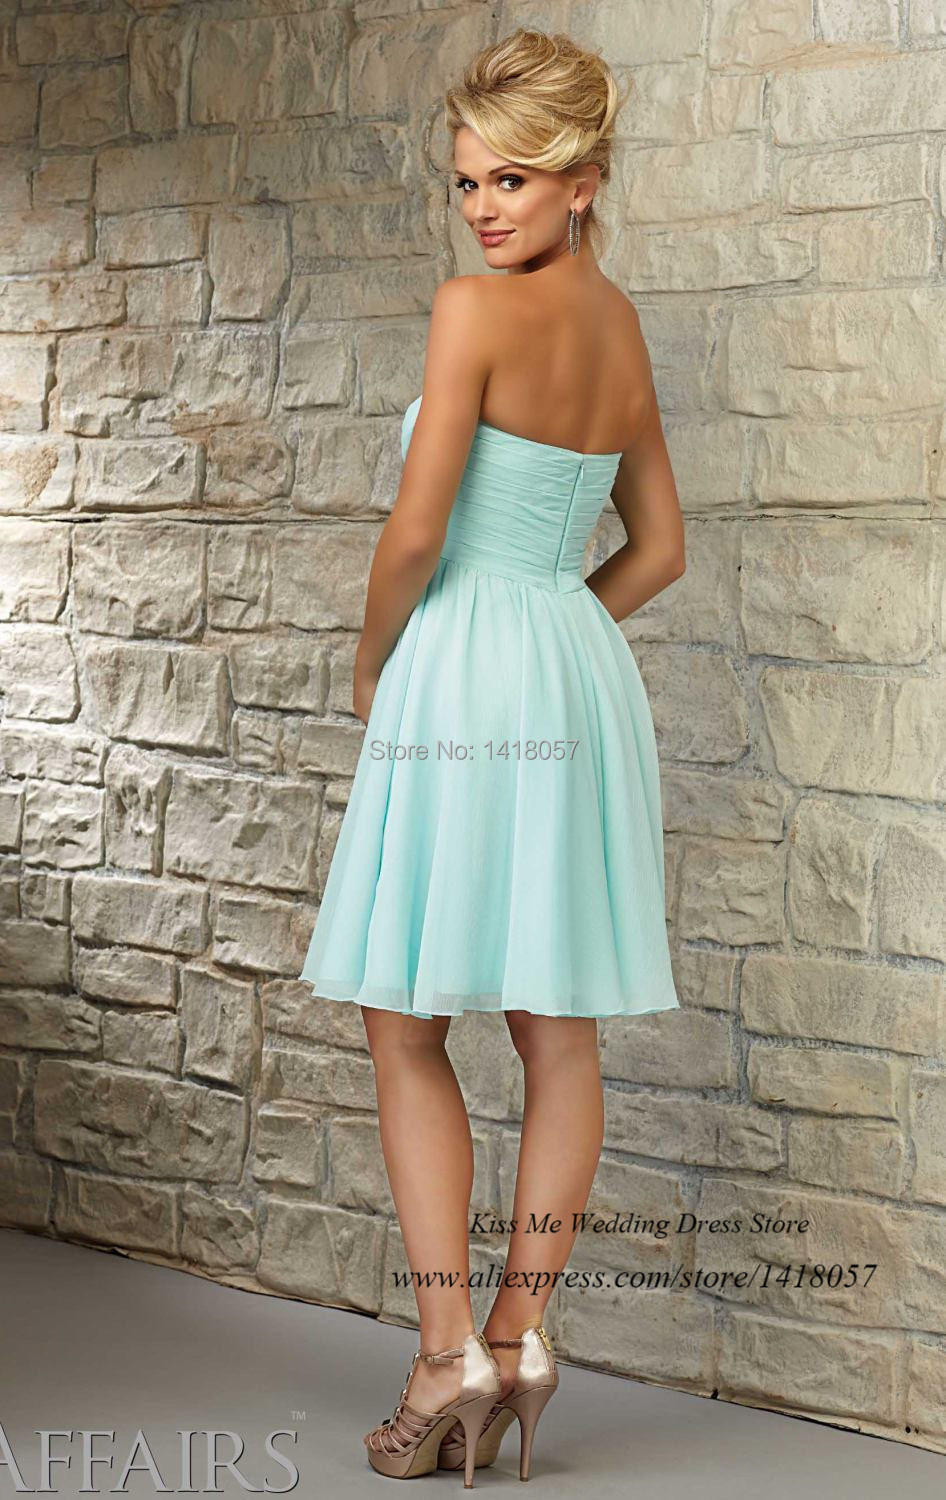 Exelent Wedding Guest Dress 2015 Image Collection - All Wedding ...